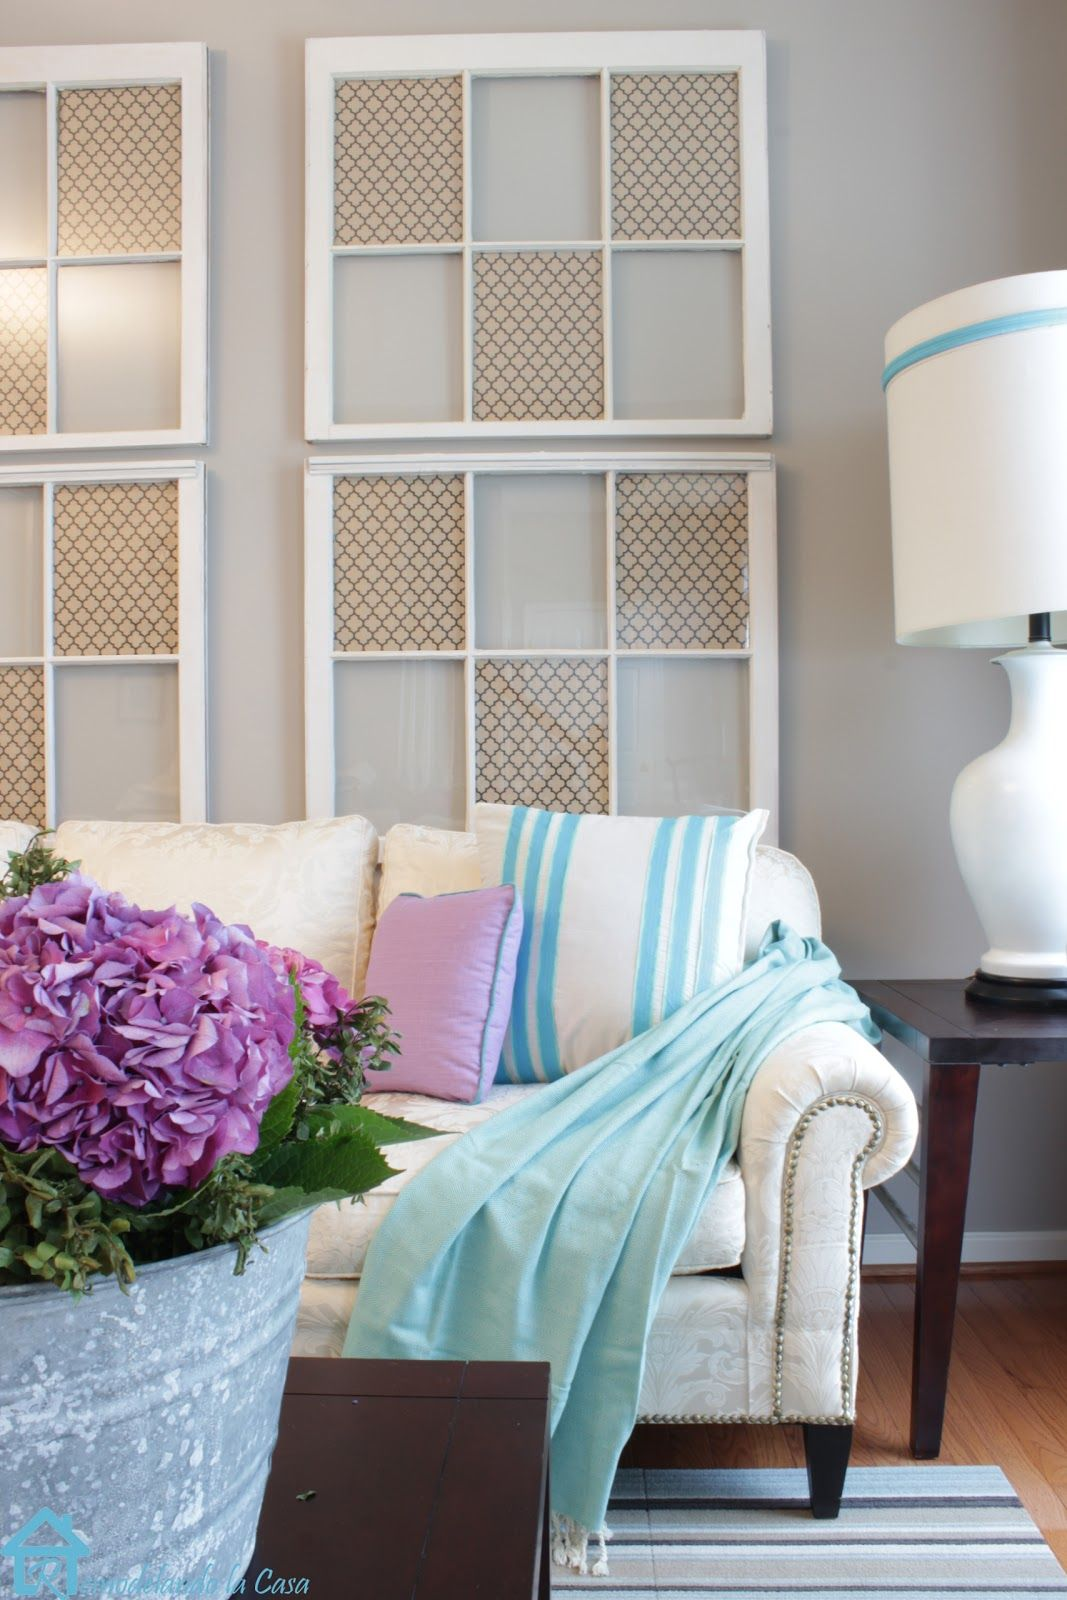 20 Different Ways To Use Old Window Frames on Room Wall Decor id=45749